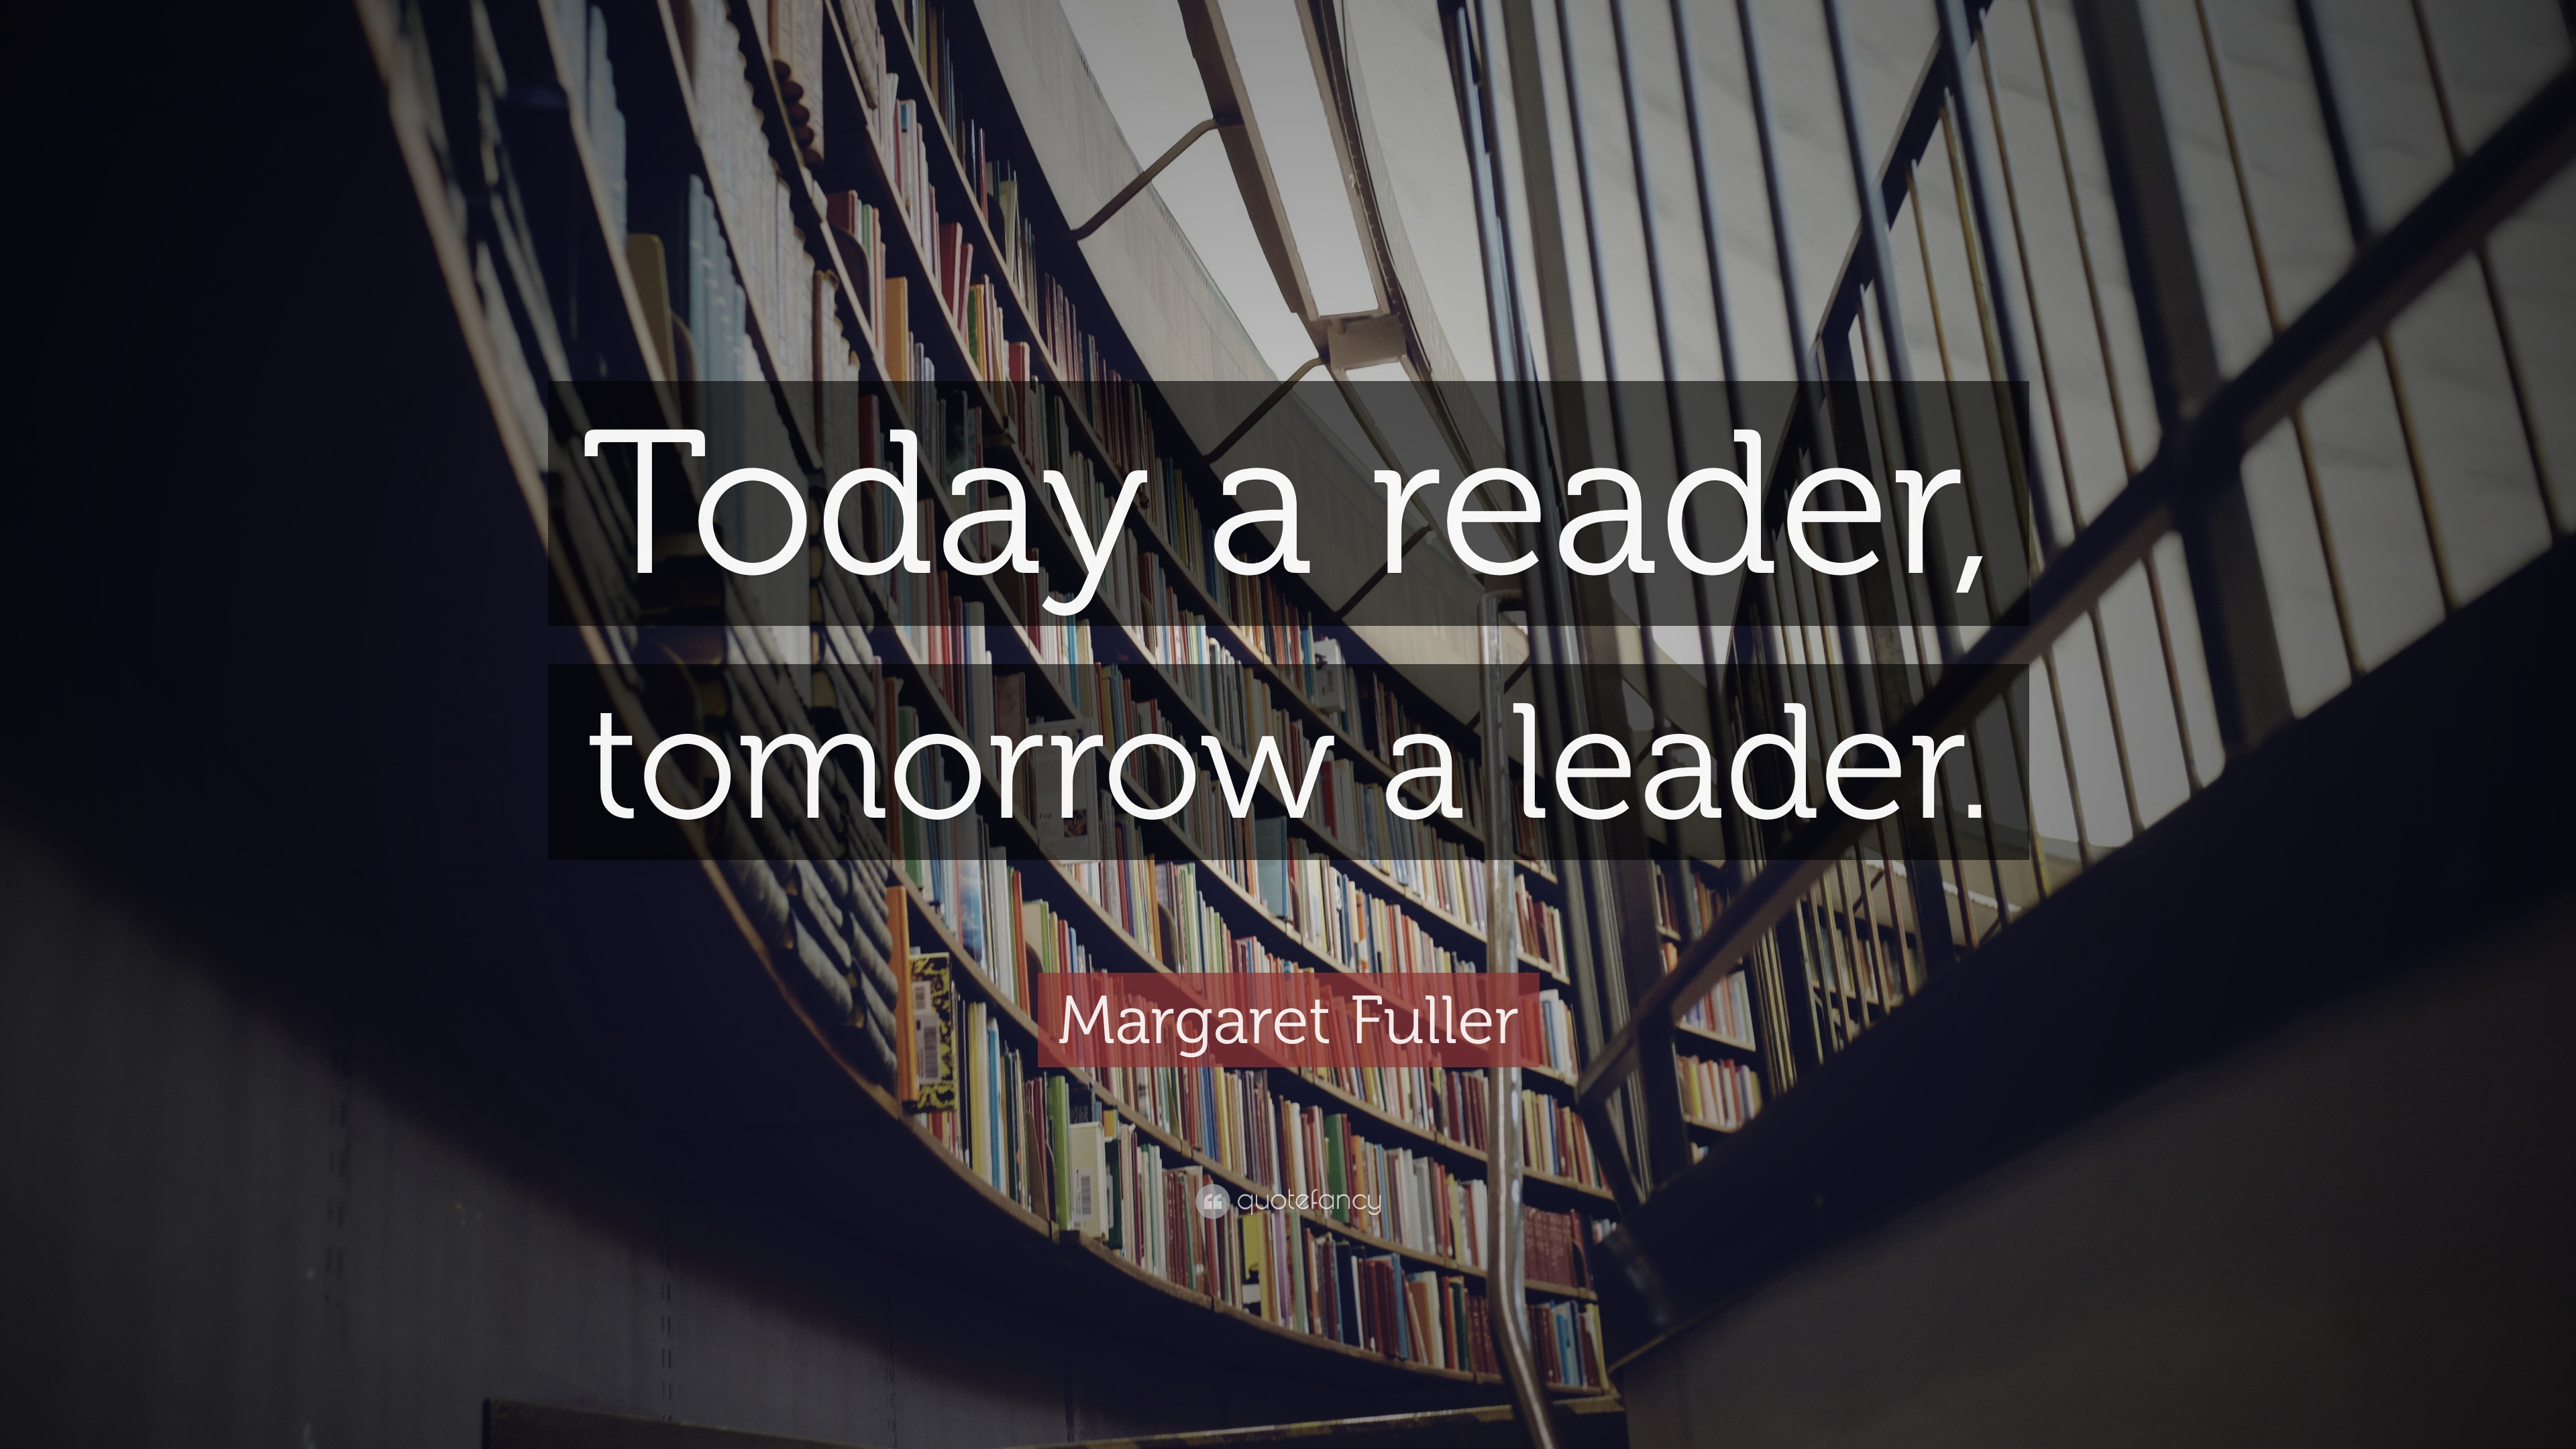 Quotes On Reading 2